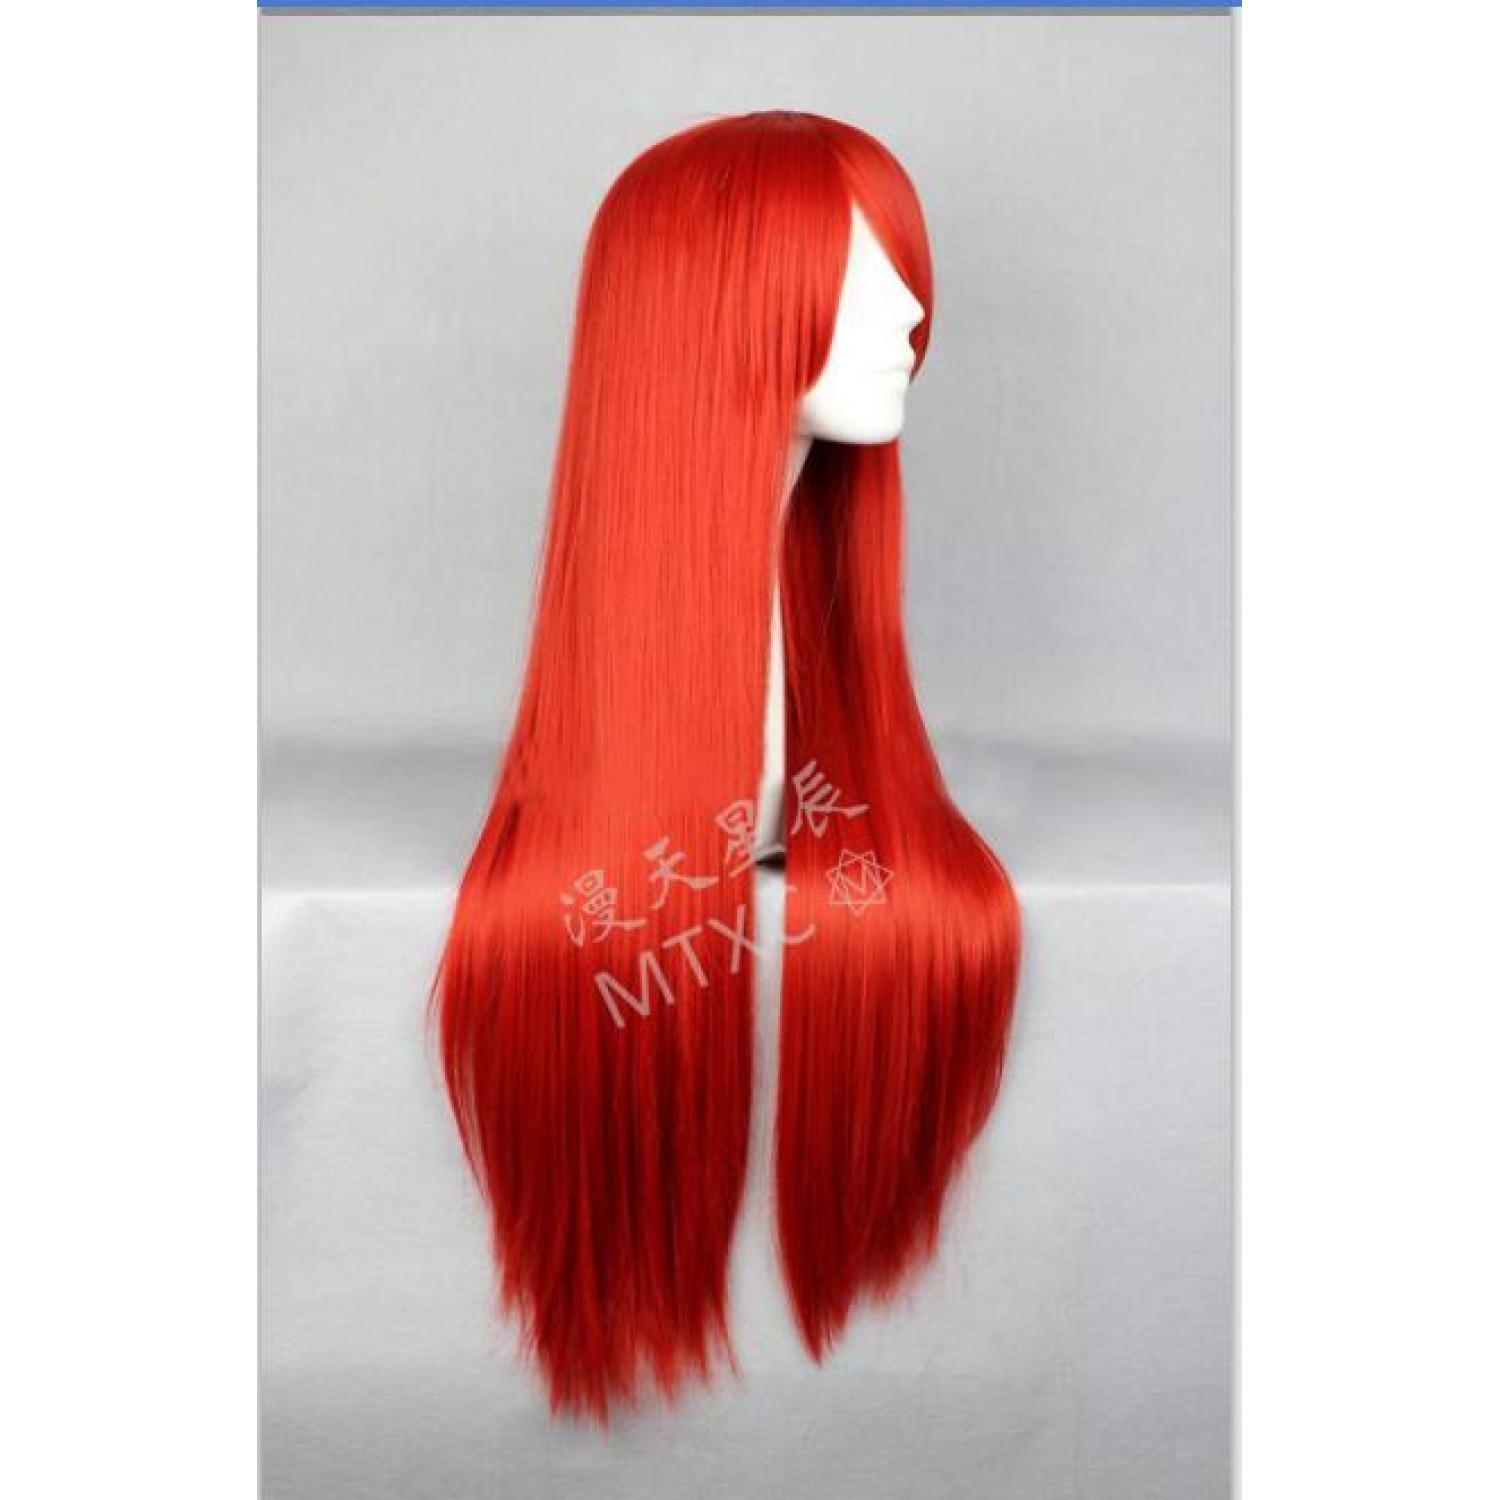 A Certain Magical Index Musujime Awaki Red Cosplay Wig